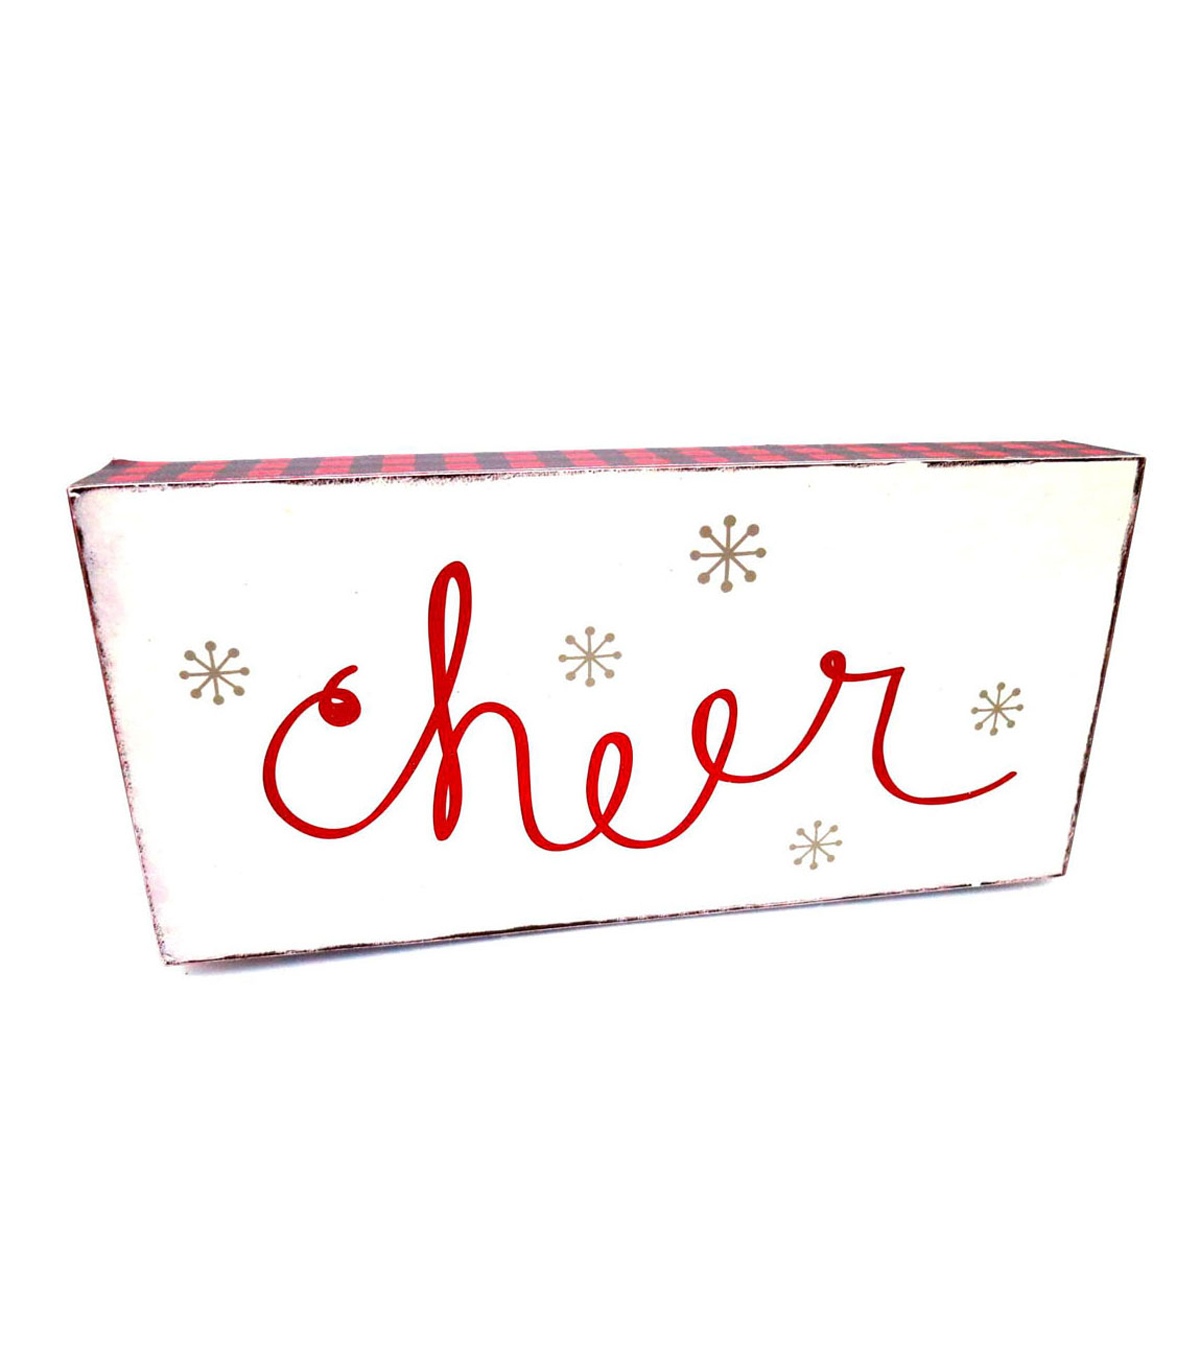 Maker's Holiday Table Decor Block-Cheer